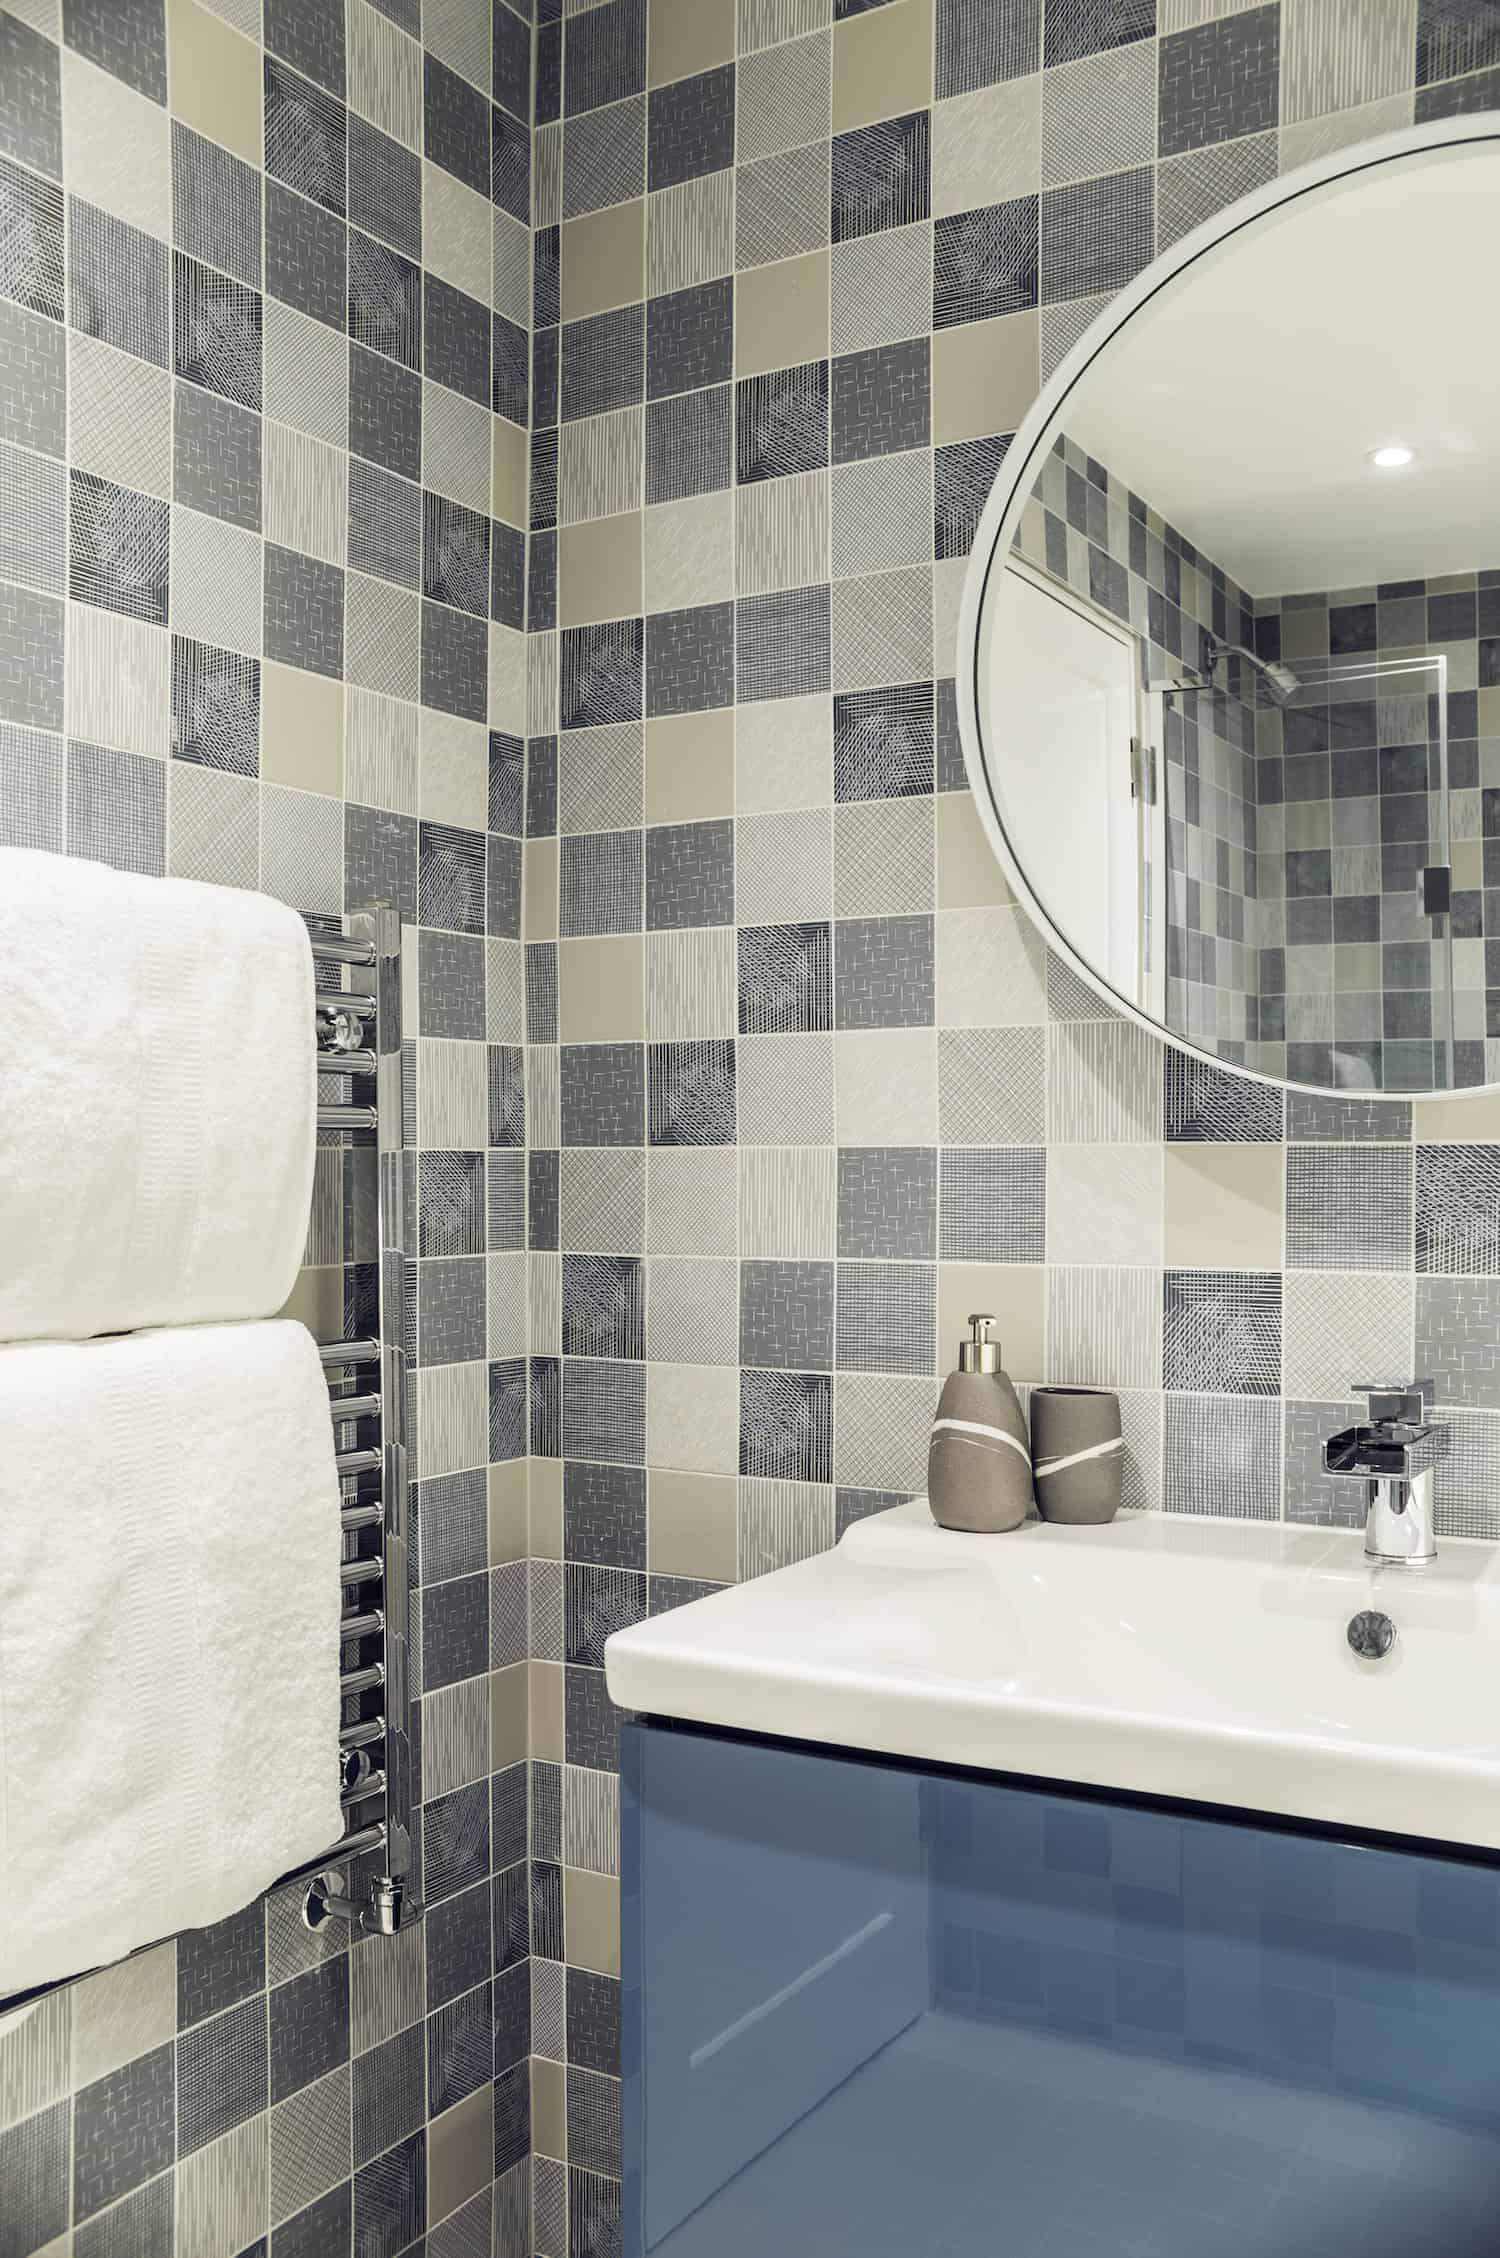 The kids bathroom is, in my view, thoughtfully designed for both kids and for guests. It's visually interesting with a multi-checked tile but not done so in an obnoxious